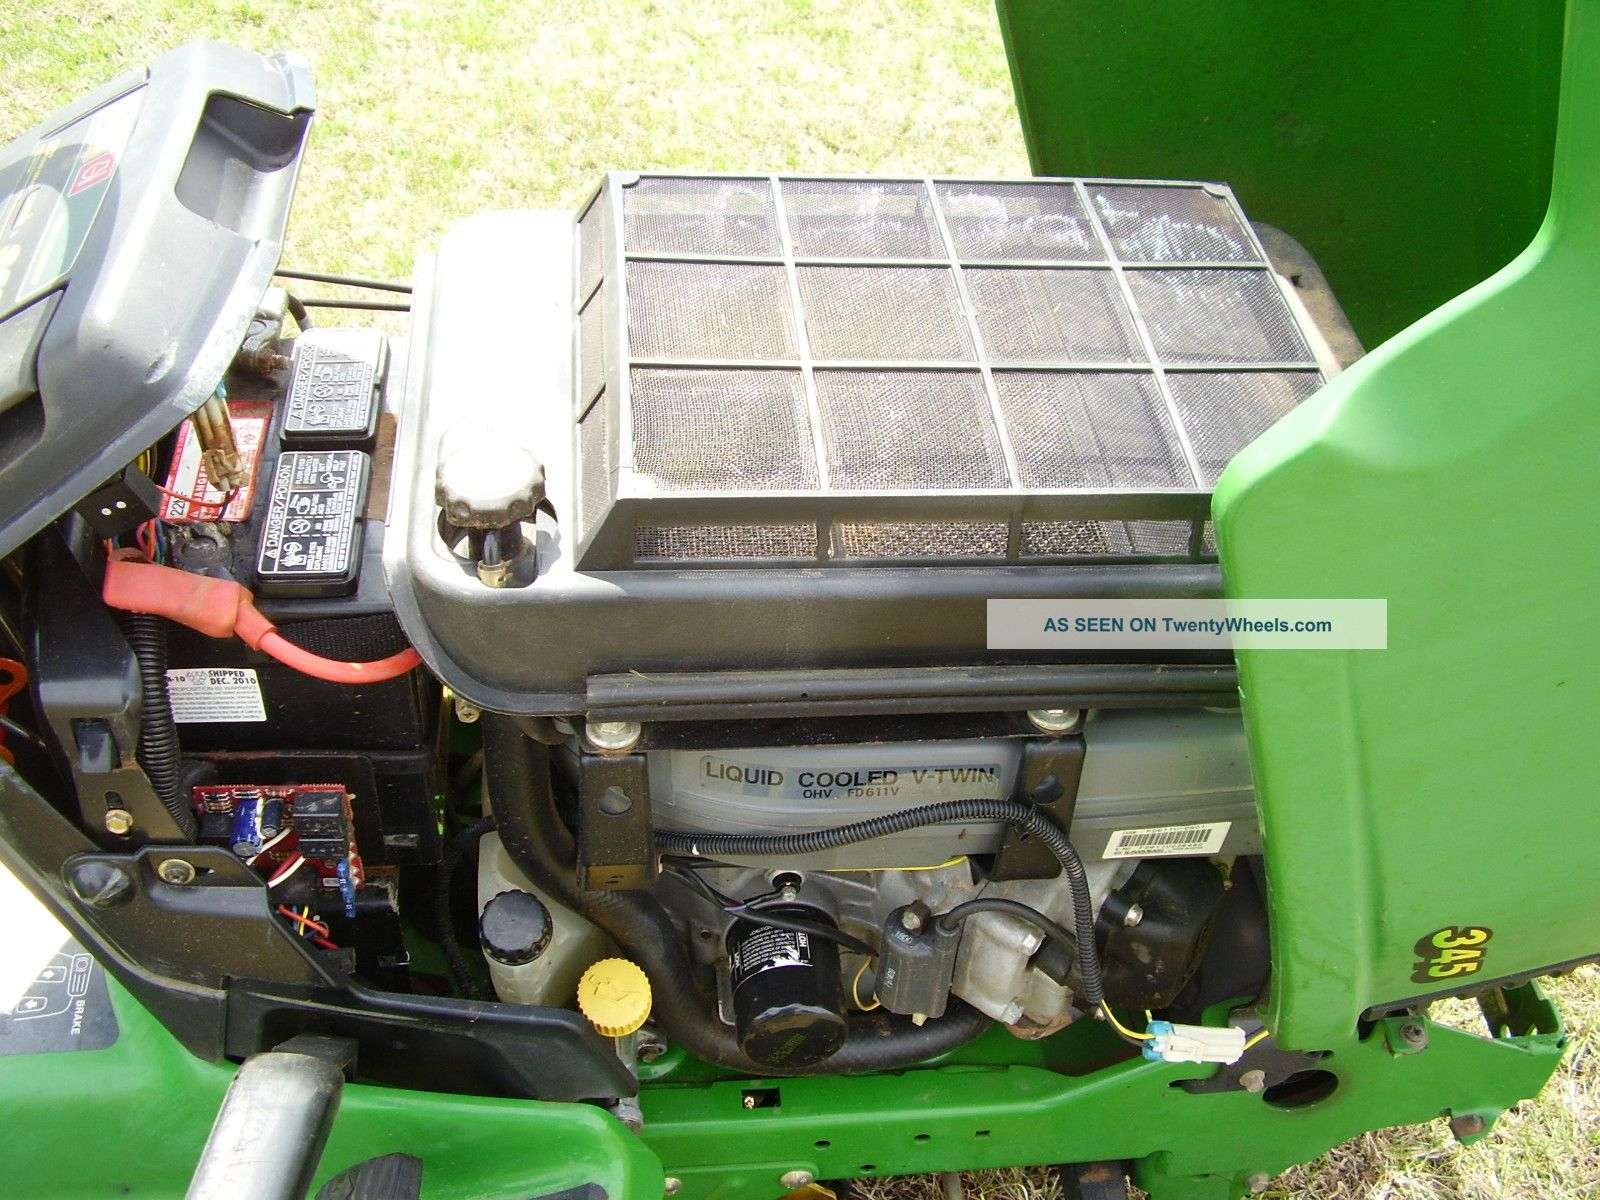 john deere 345 water cooled 48 inch cut power steering riding mowerJohn Deere 345 Engine Diagram #12